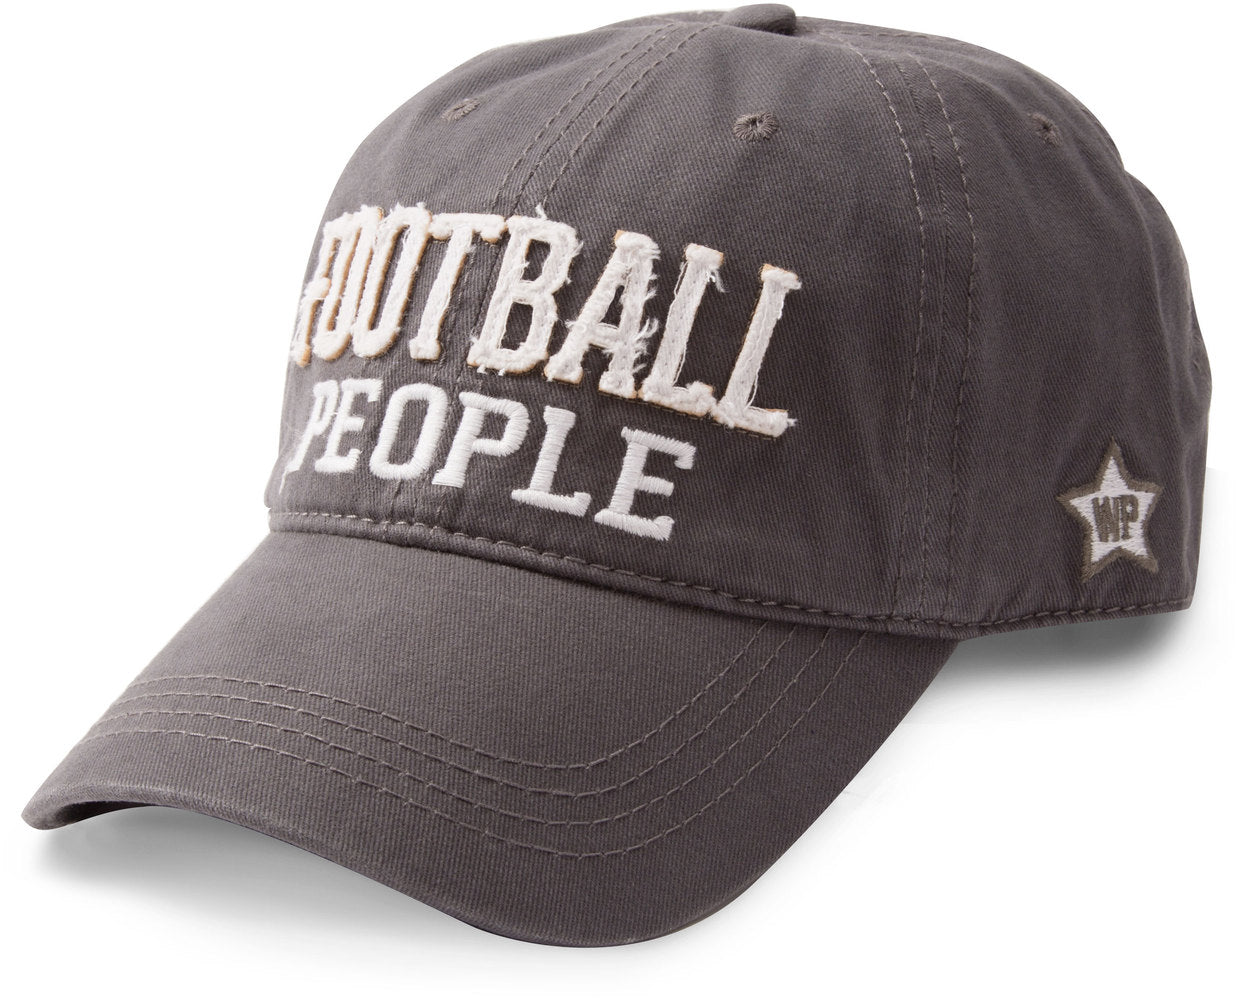 Football People Dark Grey Cap